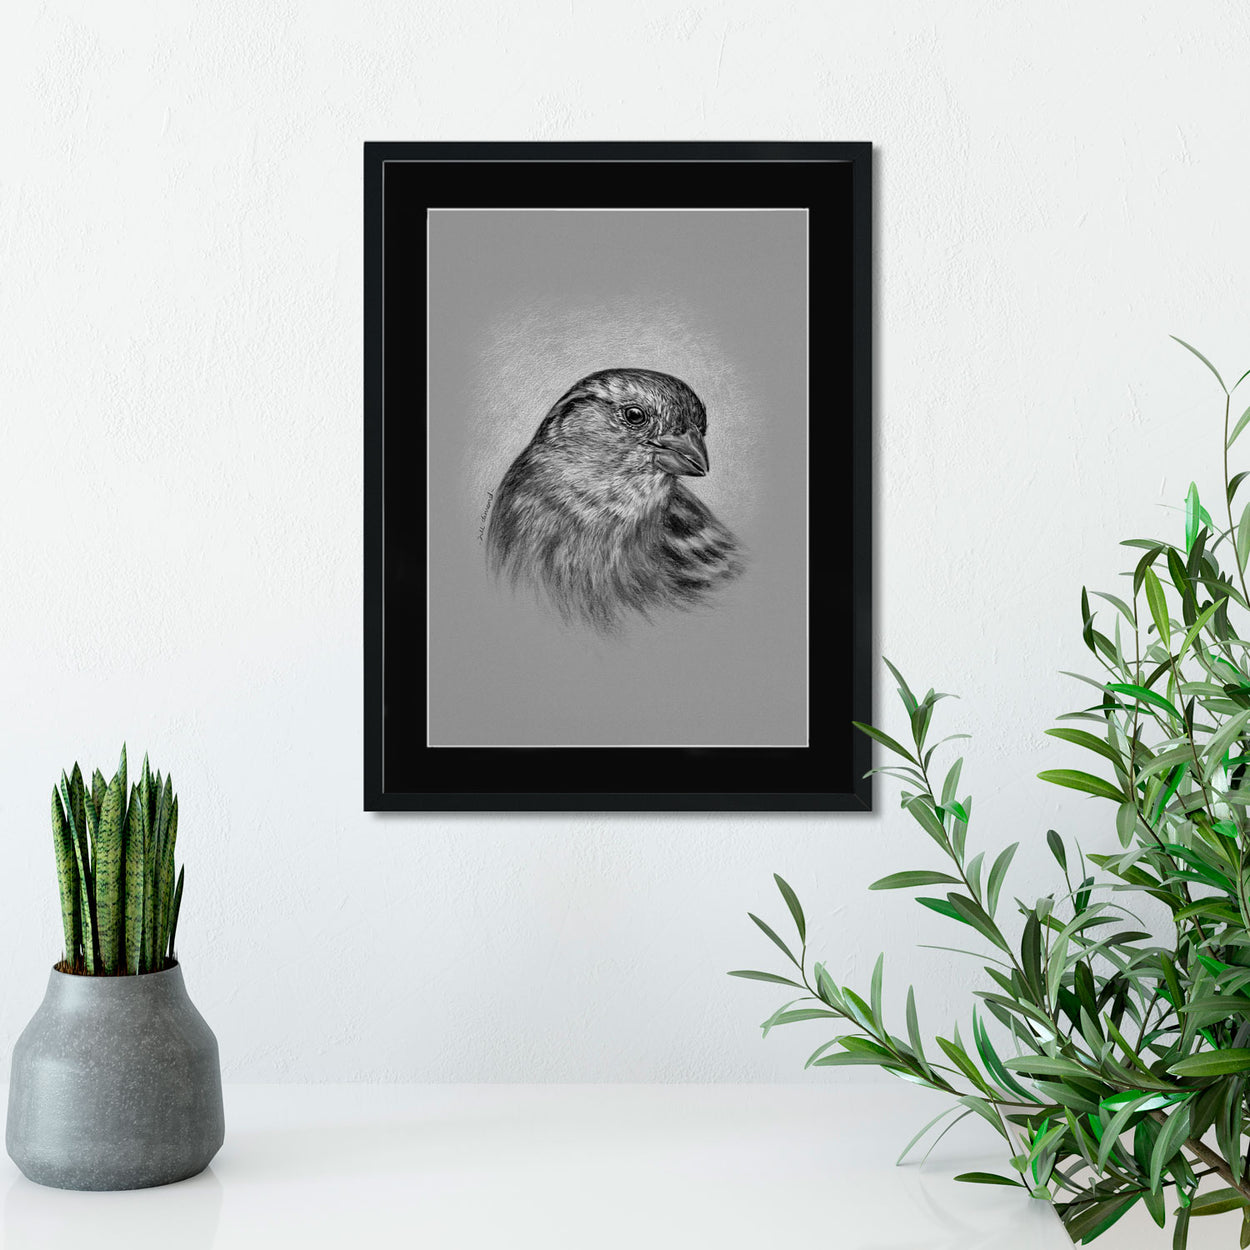 Sparrow in Frame on Wall - The Thriving Wild